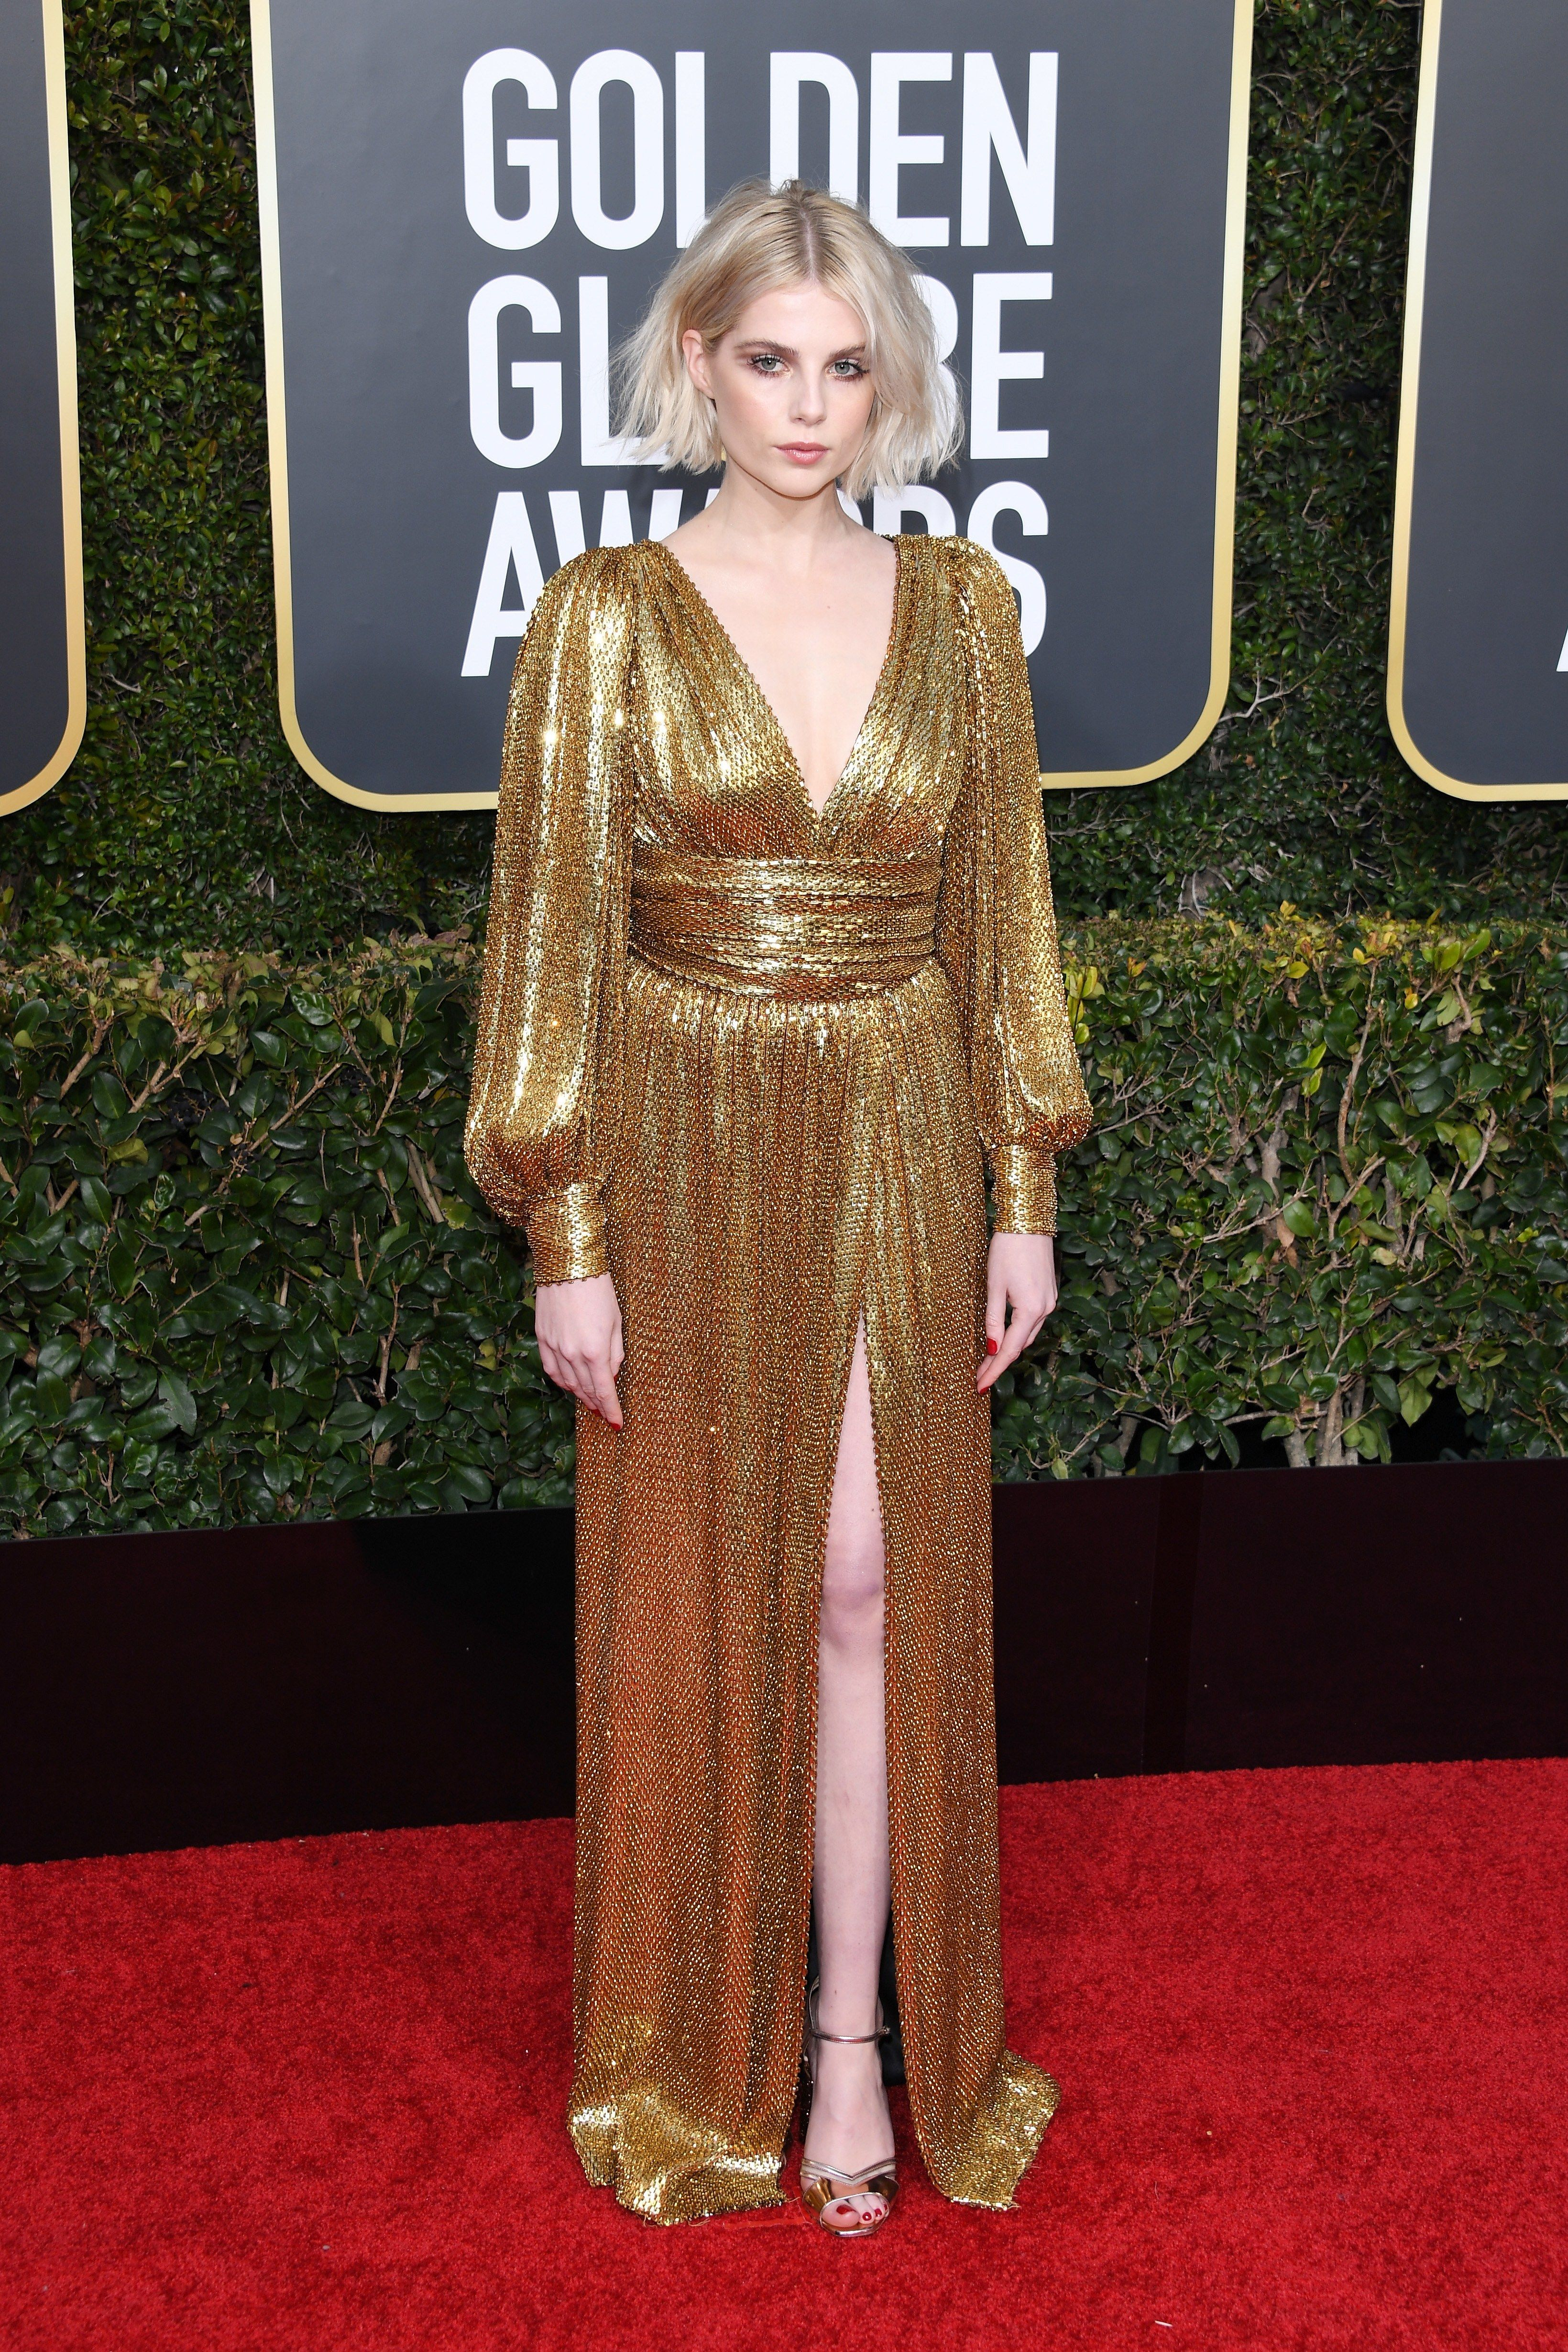 The Best Looks From The Golden Globes Red Carpet Nice Dresses Fancy Dresses Long Golden Globes Red Carpet